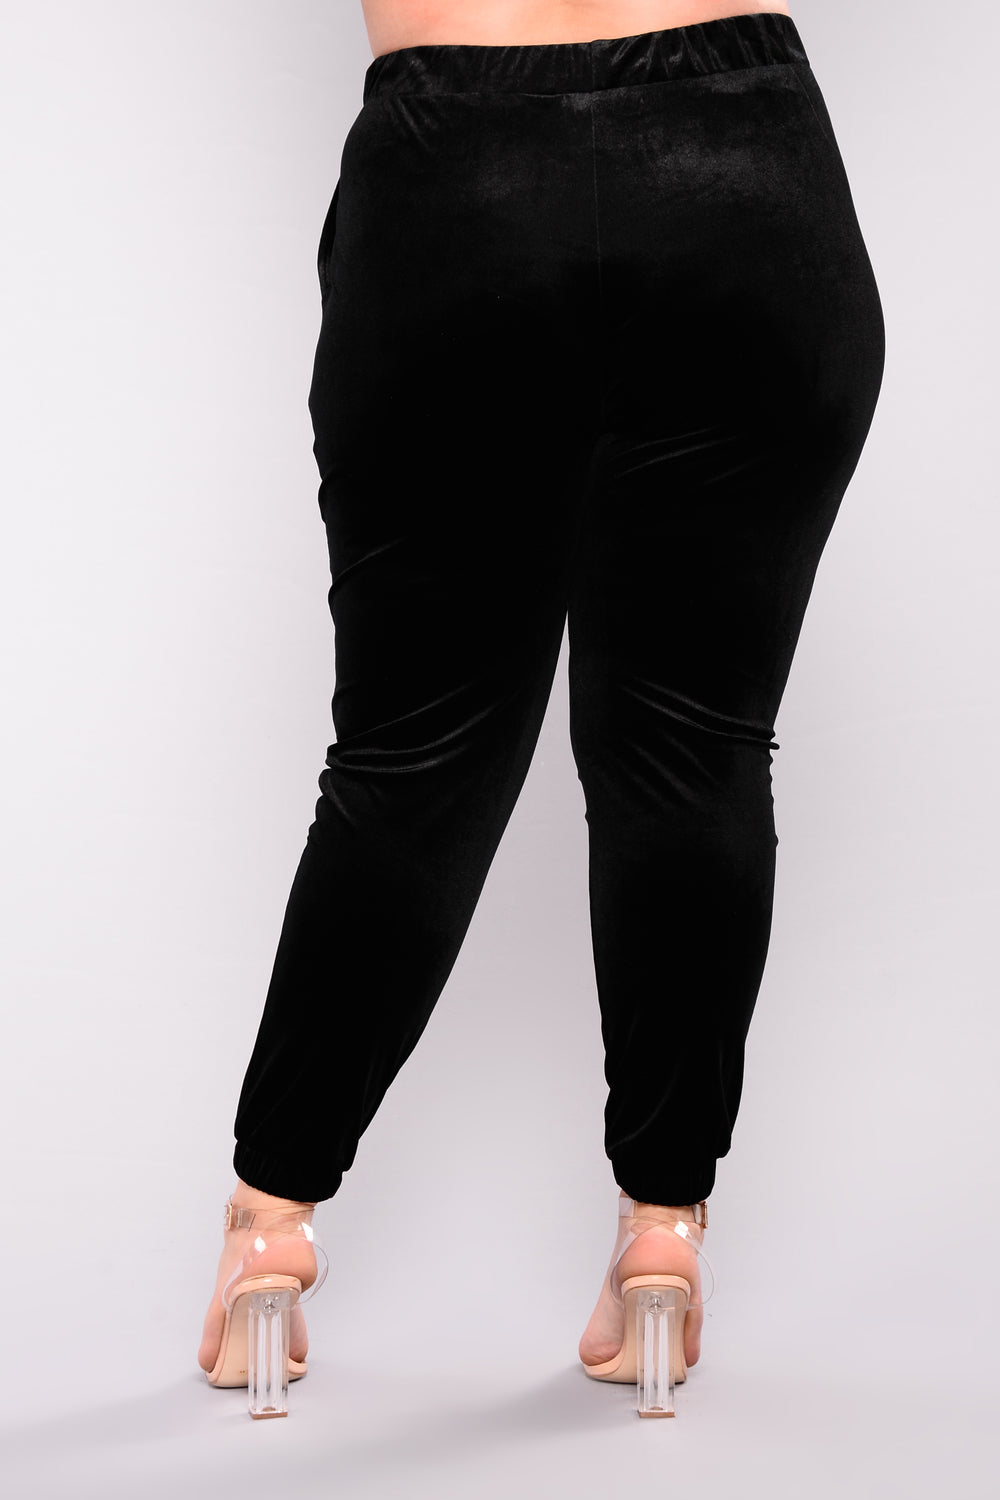 Settle Down Jogger Pants - Black